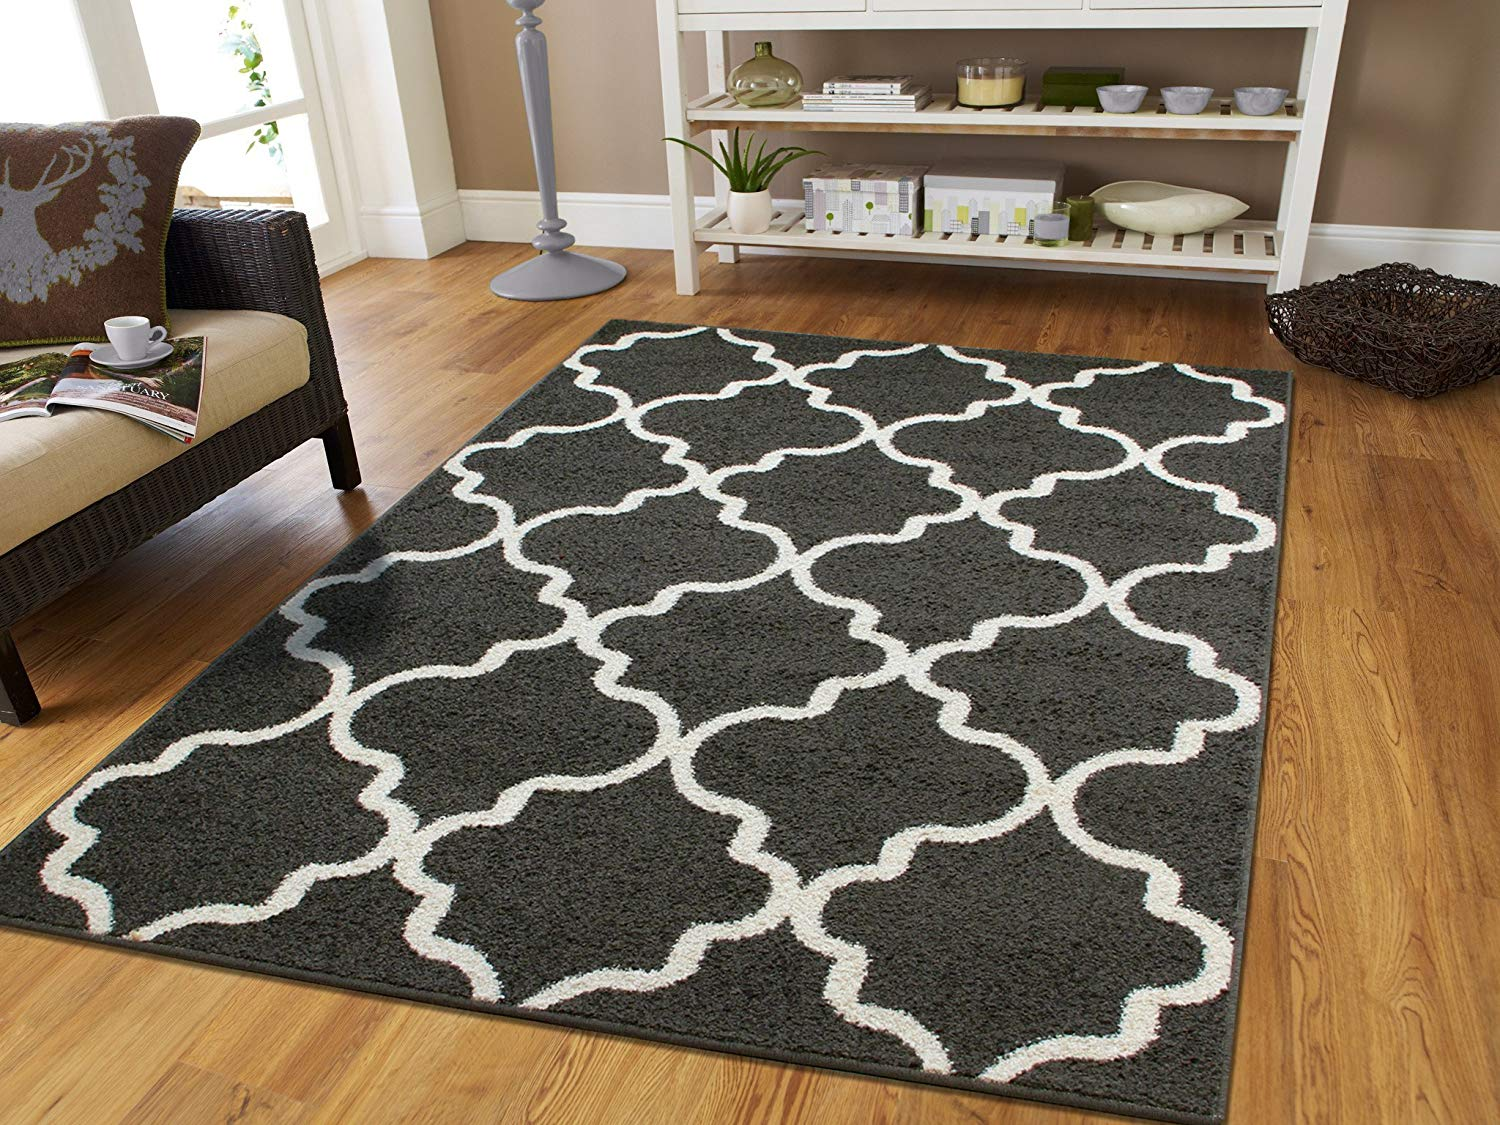 floor rugs amazon.com: large 8x11 morrocan trellis area rug gray contemporary rugs  8x10 for NSPWFDS